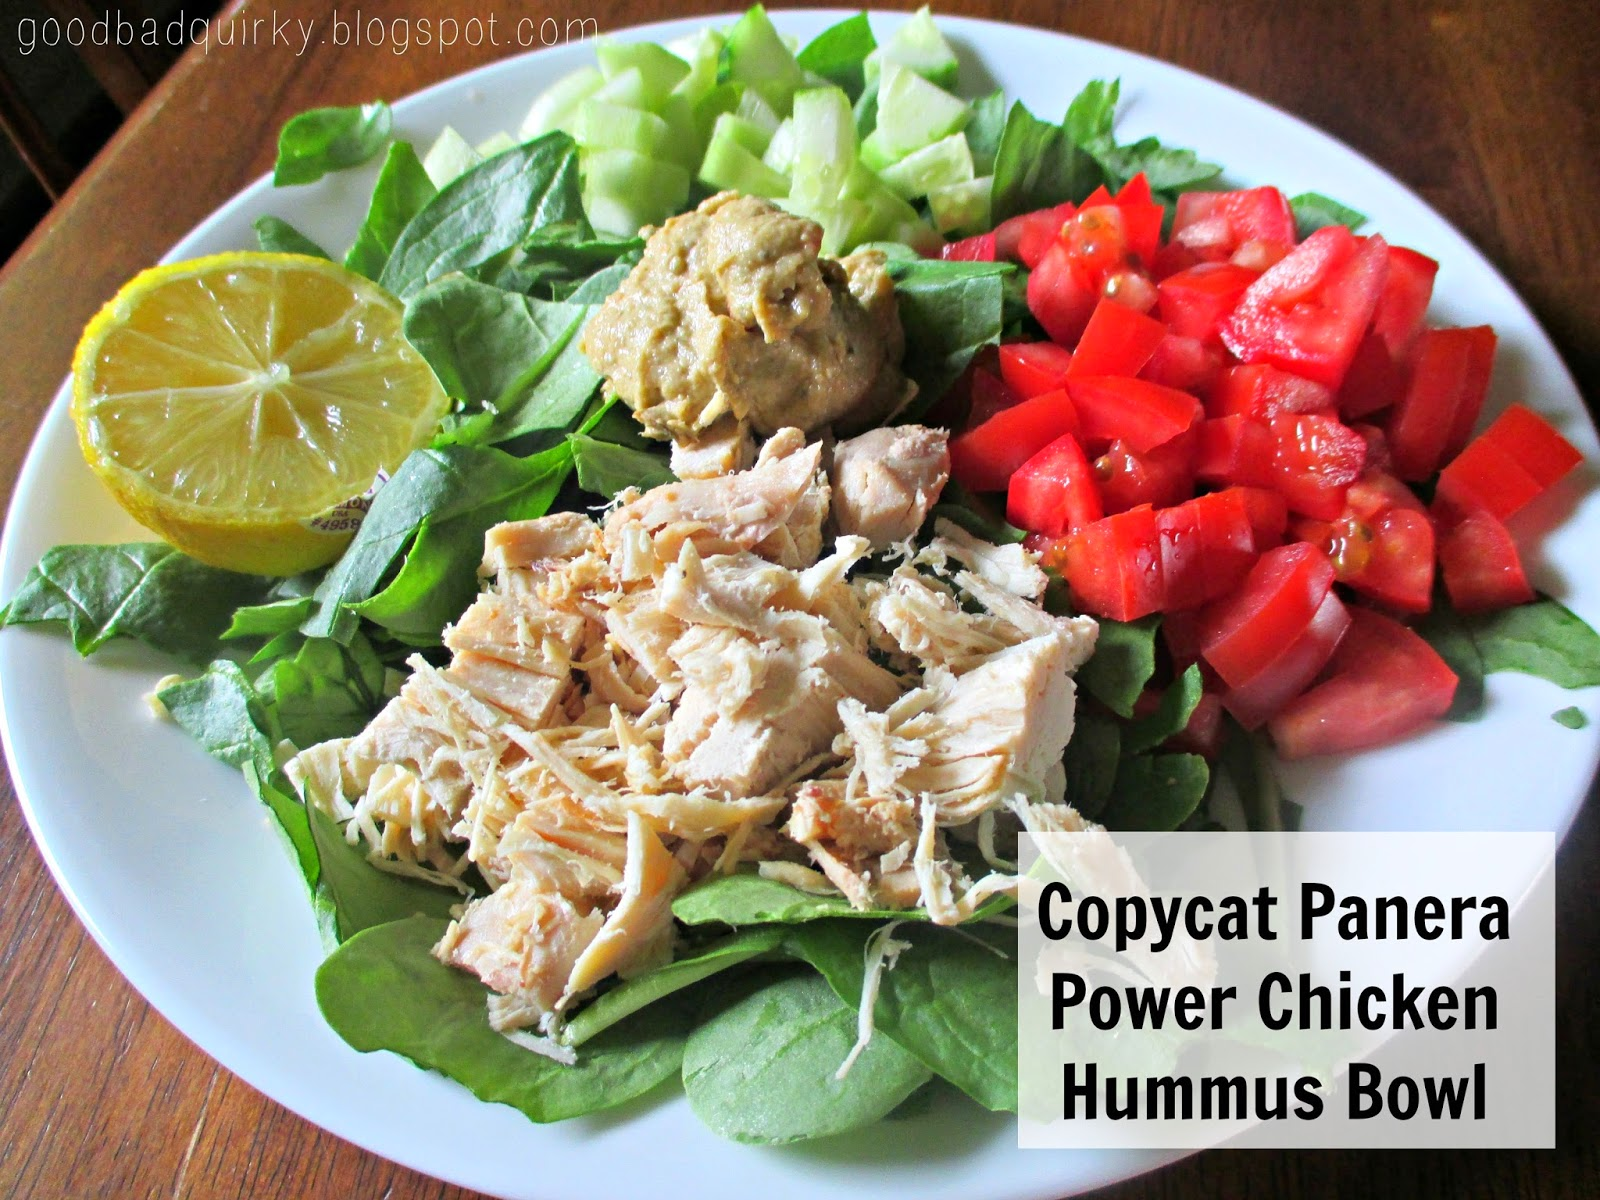 Copy cat Panera Power Chicken Hummus Bowl